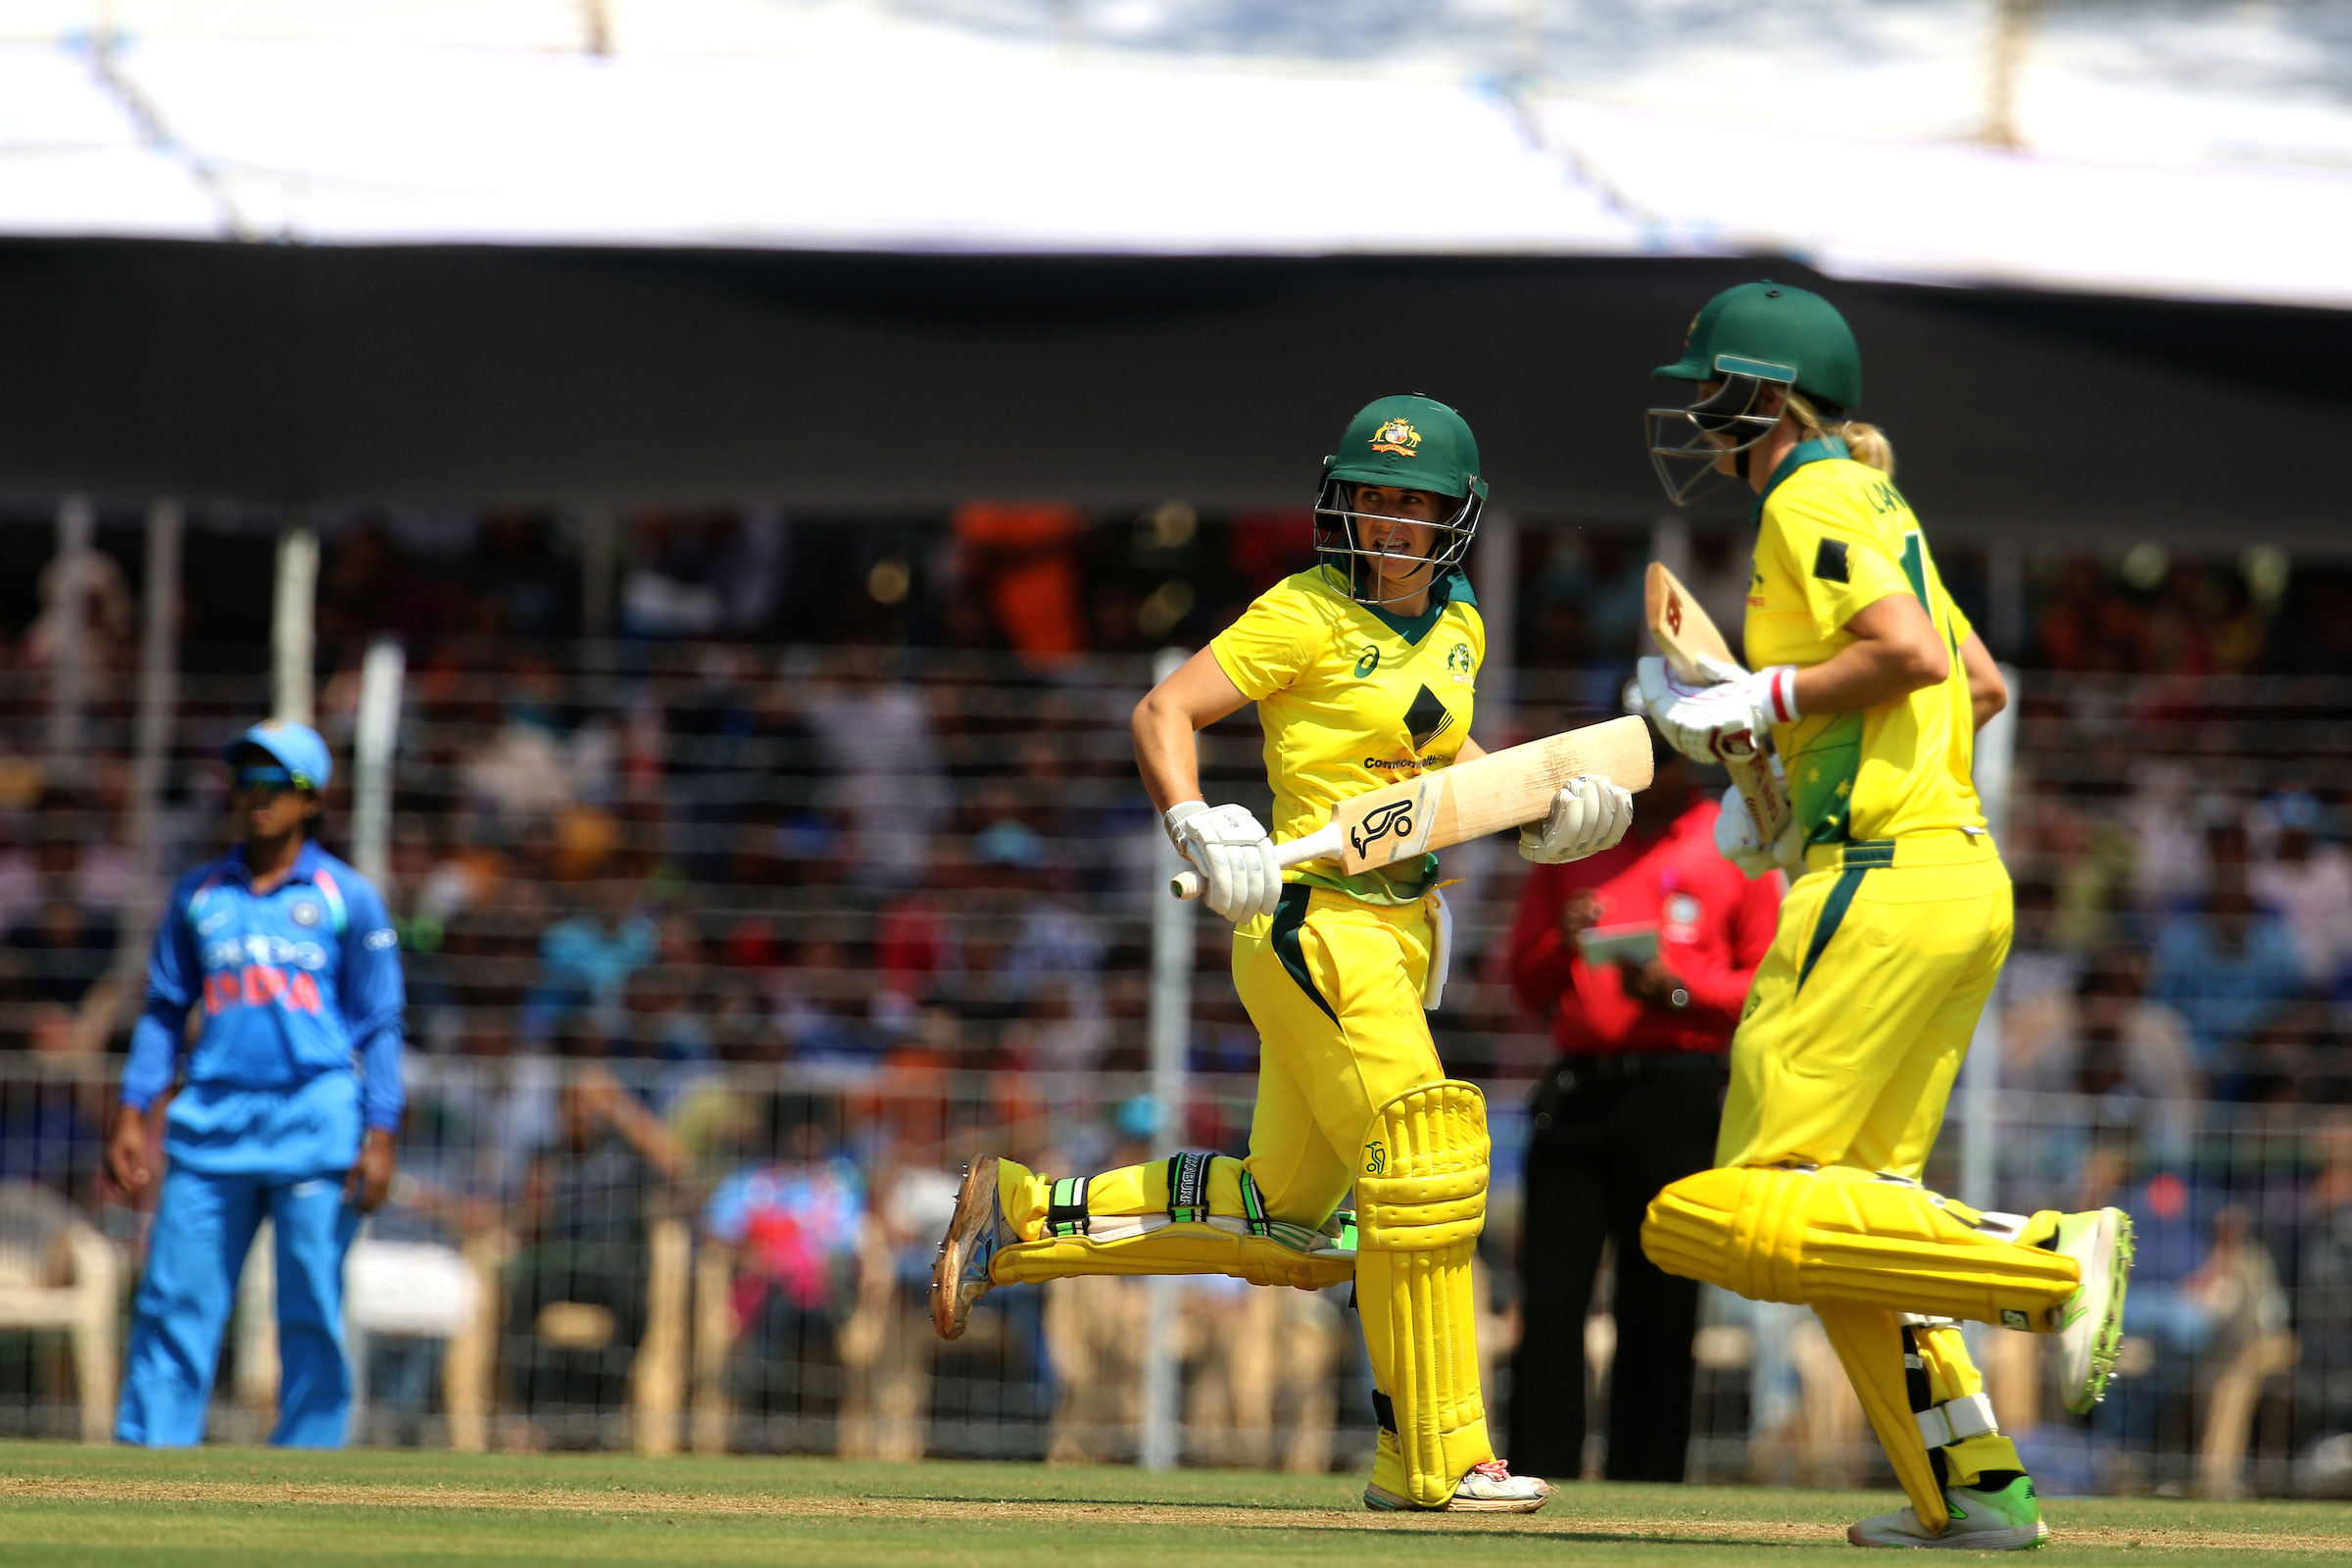 Bolton shared a key stand with Lanning // BCCI